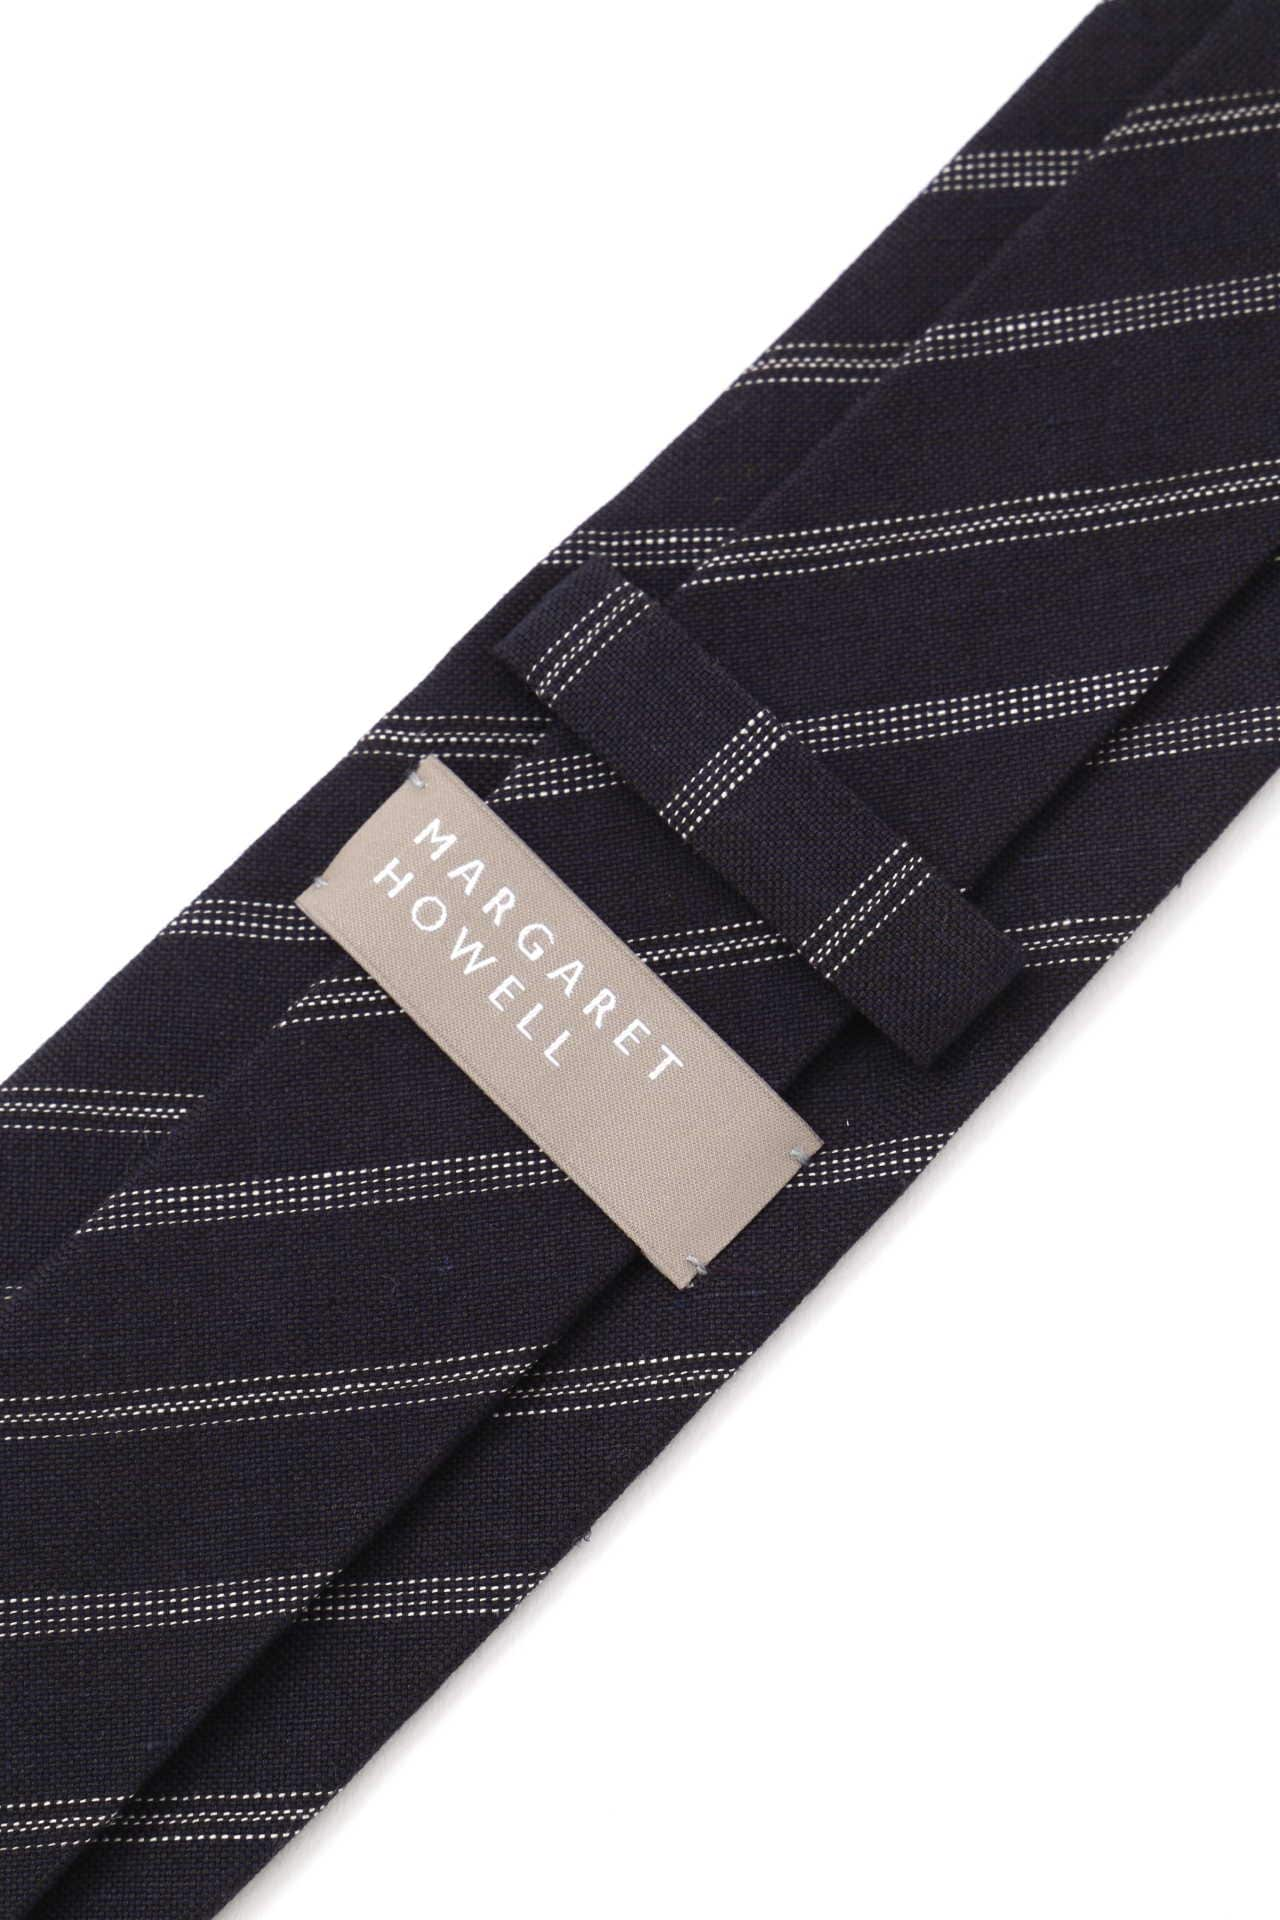 GRAPHIC STRIPE TIE2